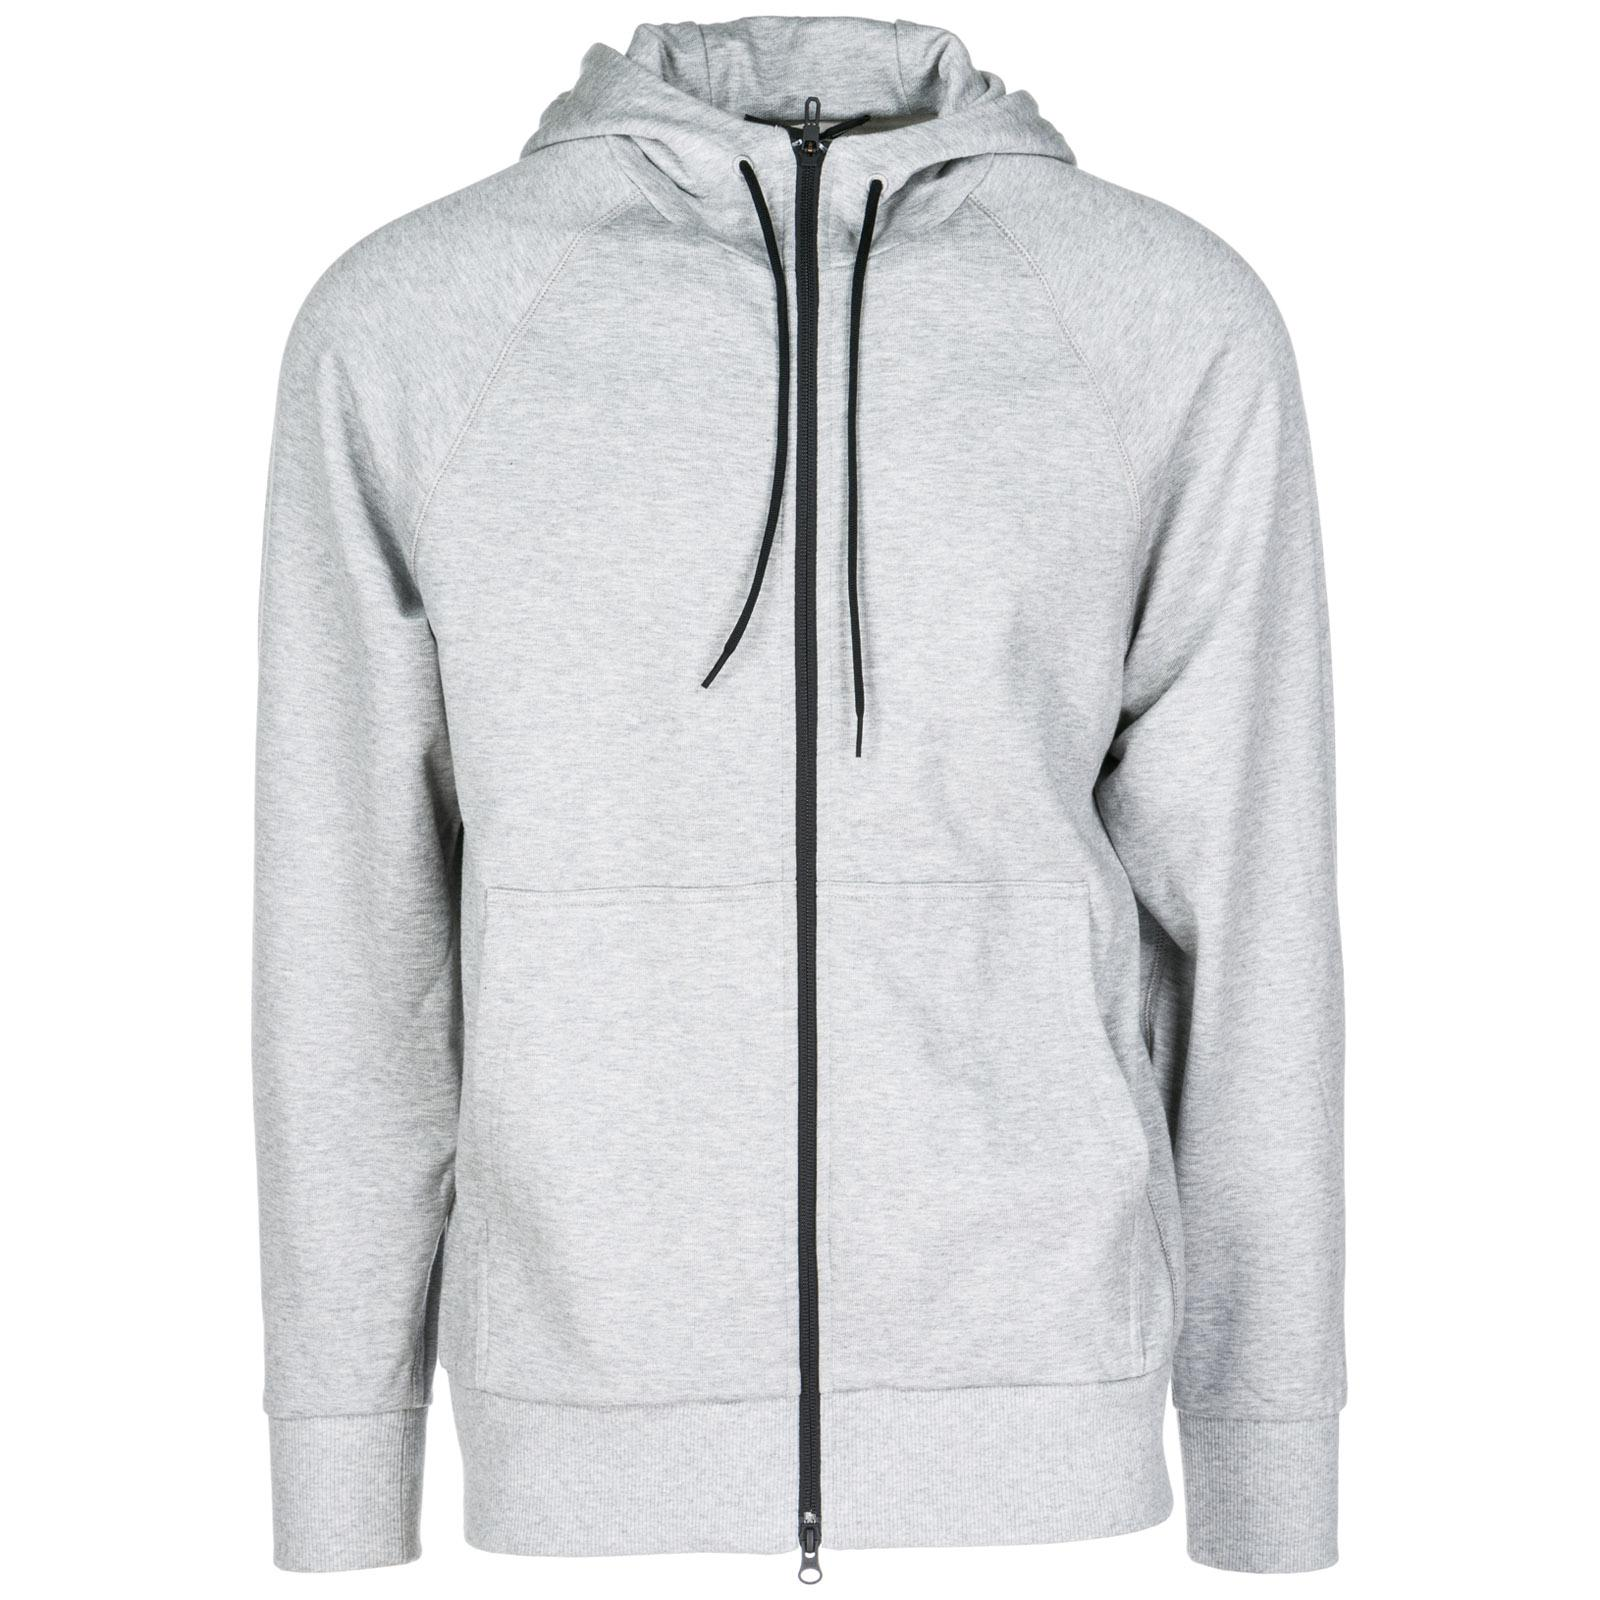 Y-3 Men's Hoodie Sweatshirt Sweat In Grey